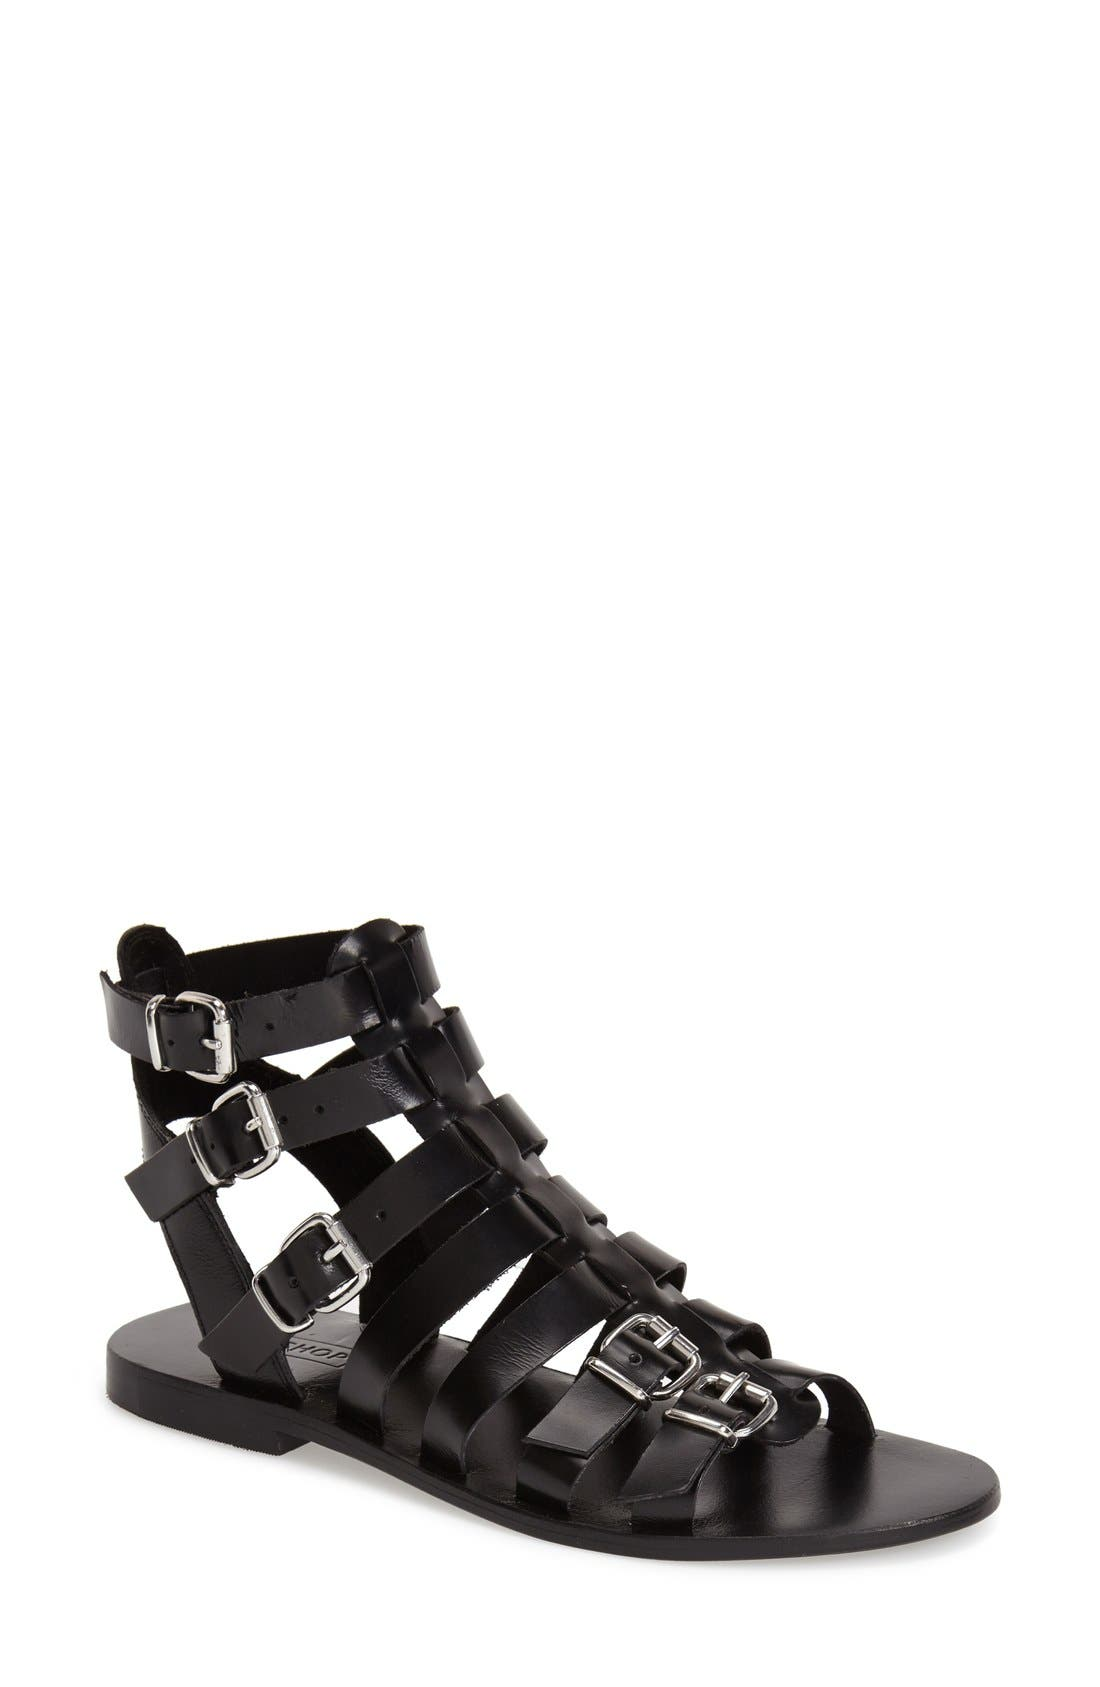 Alternate Image 1 Selected - Topshop 'Favorite' Flat Gladiator Sandal (Women)